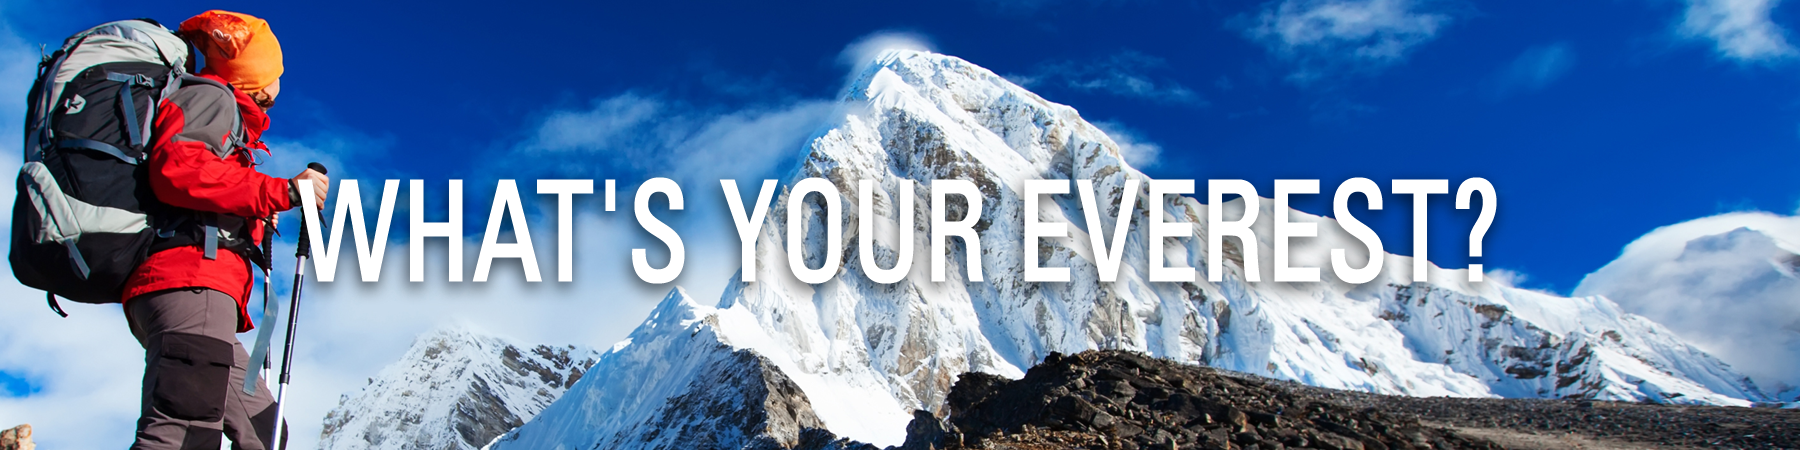 Finish Strong I What's Your Everest?